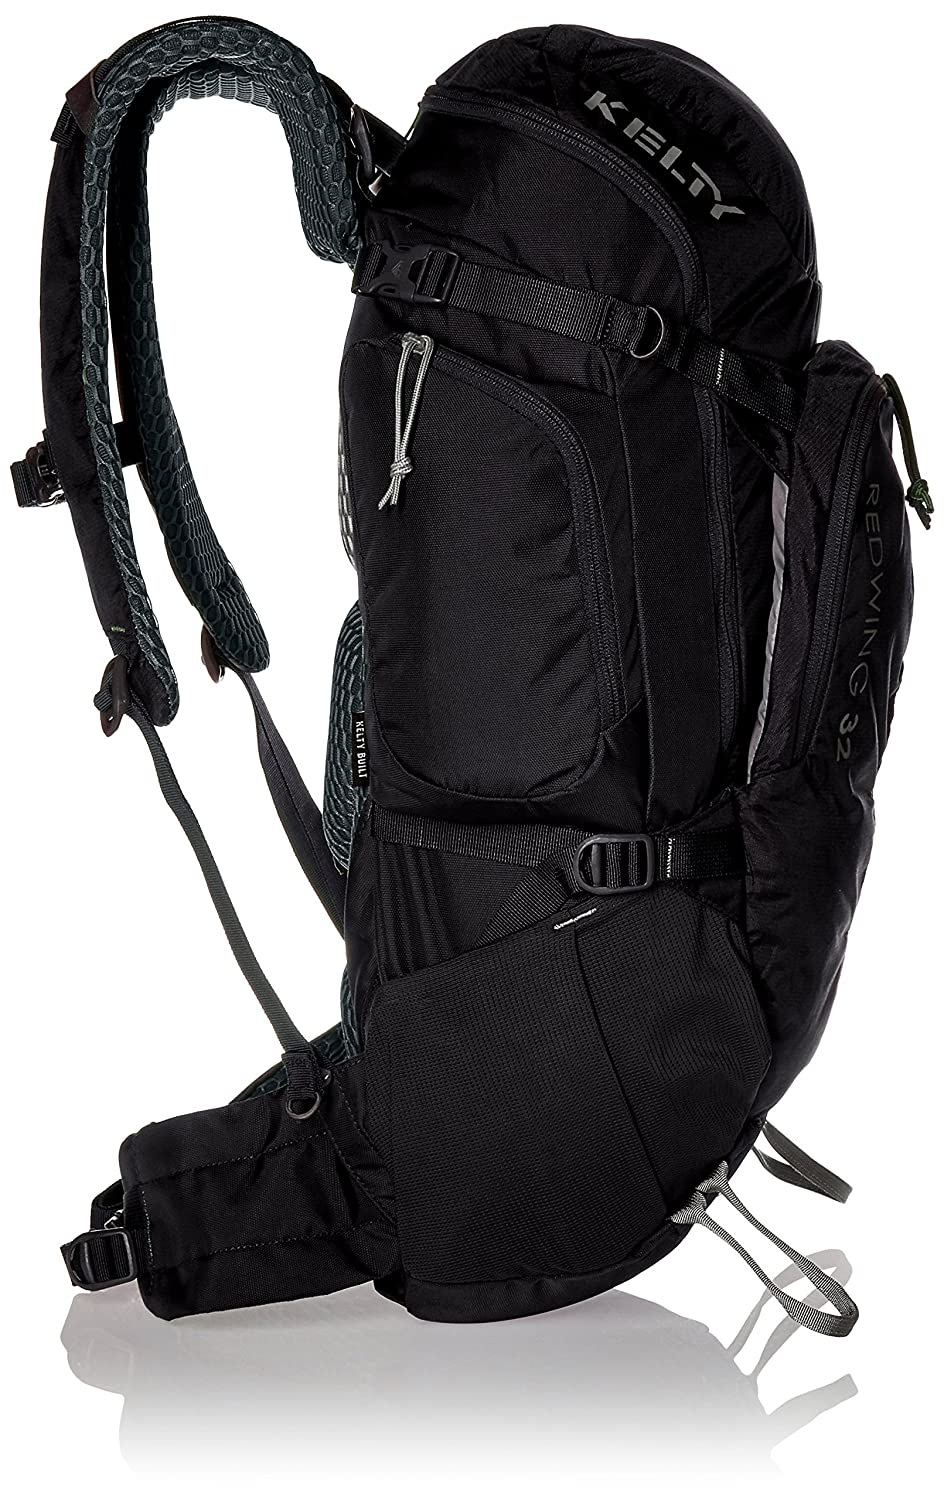 Kelty Redwing 32 - Mochila, 32 L, Color Negro, tamaño Medium, Volumen Liters 32.0: Amazon.es: Deportes y aire libre